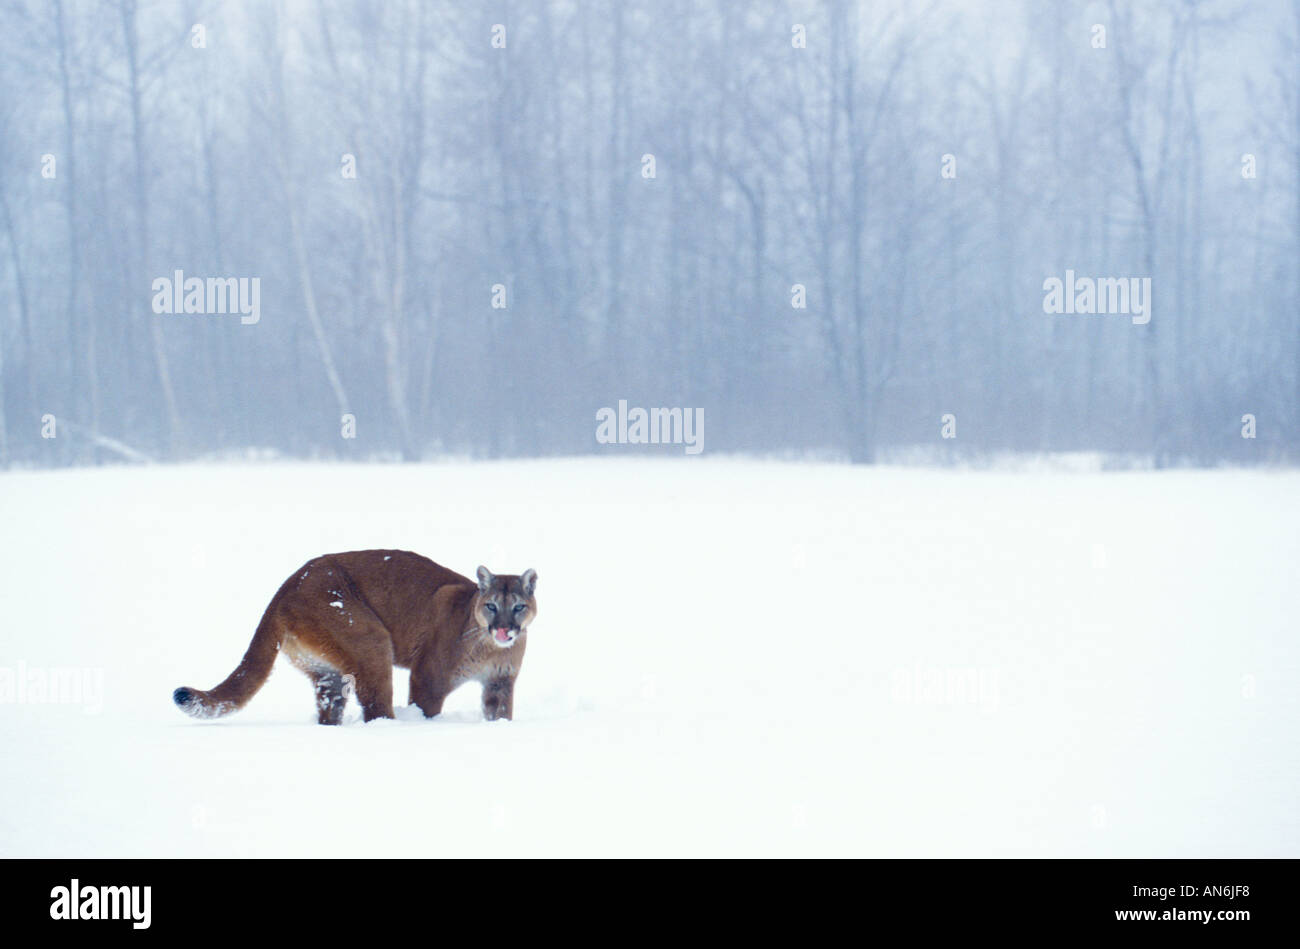 Mountain Lion Felis concolor Couguar Puma Minnesota USA Photo Stock